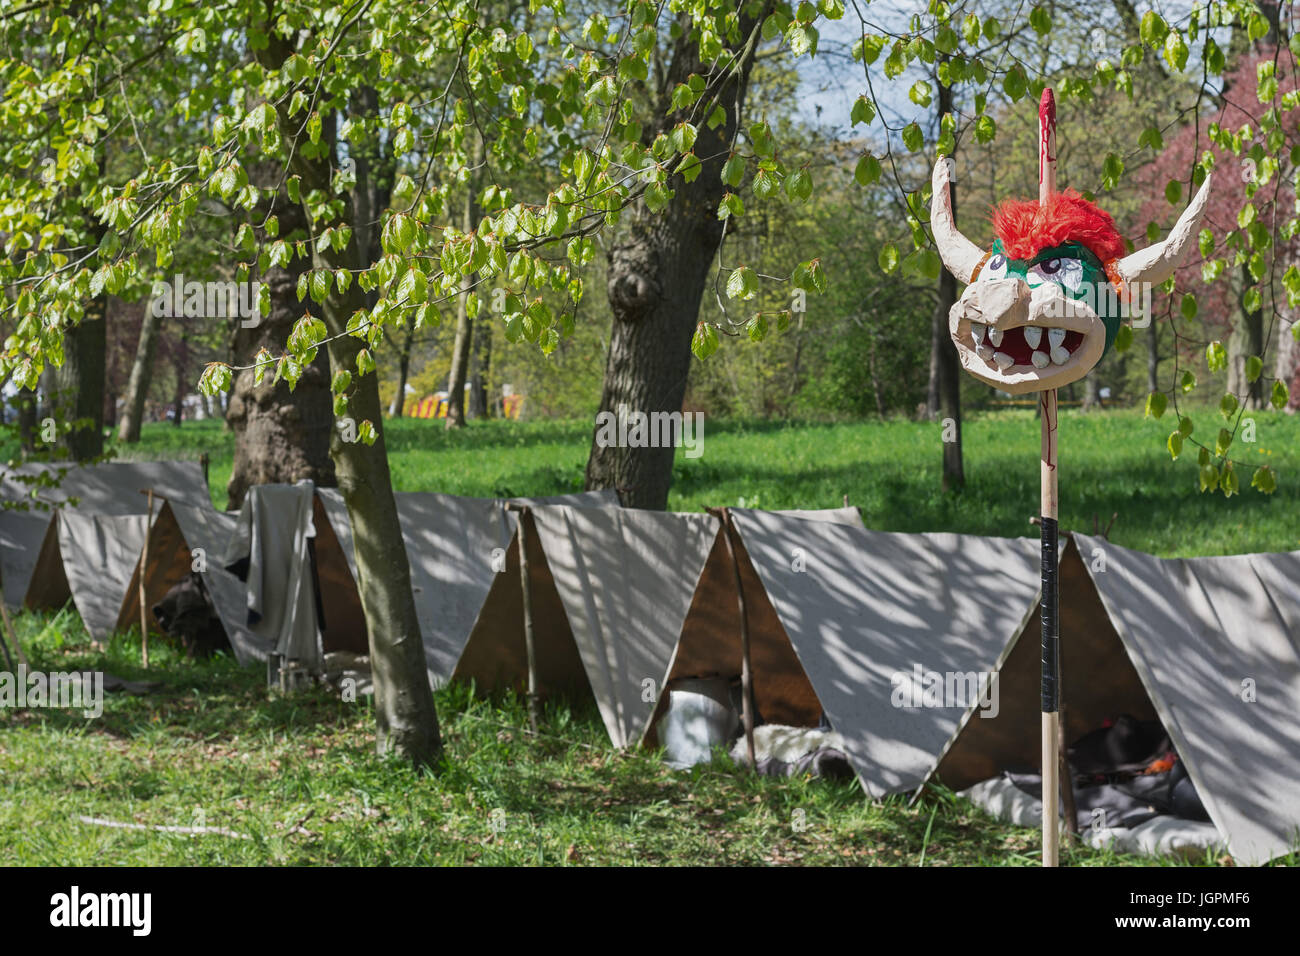 Simple tents on the festival site with in front an impaled bullhead of papier mache & Simple tents on the festival site with in front an impaled ...